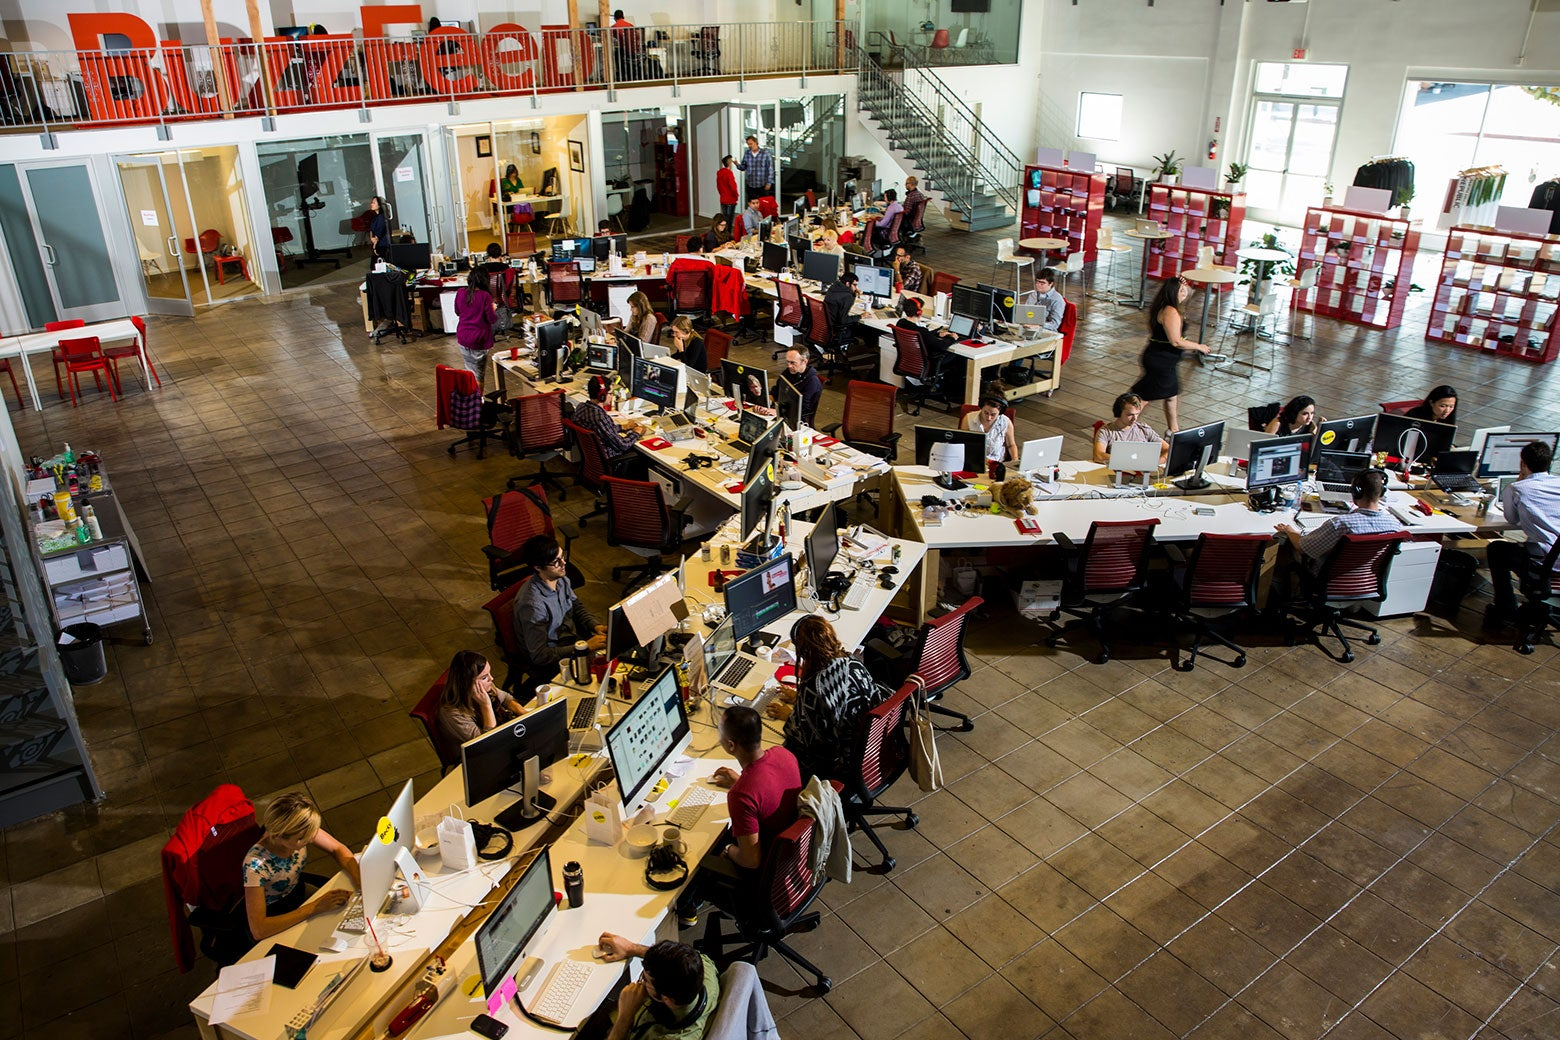 The newsroom of the Los Angeles BuzzFeed headquarters, photographed Oct. 7, 2013.